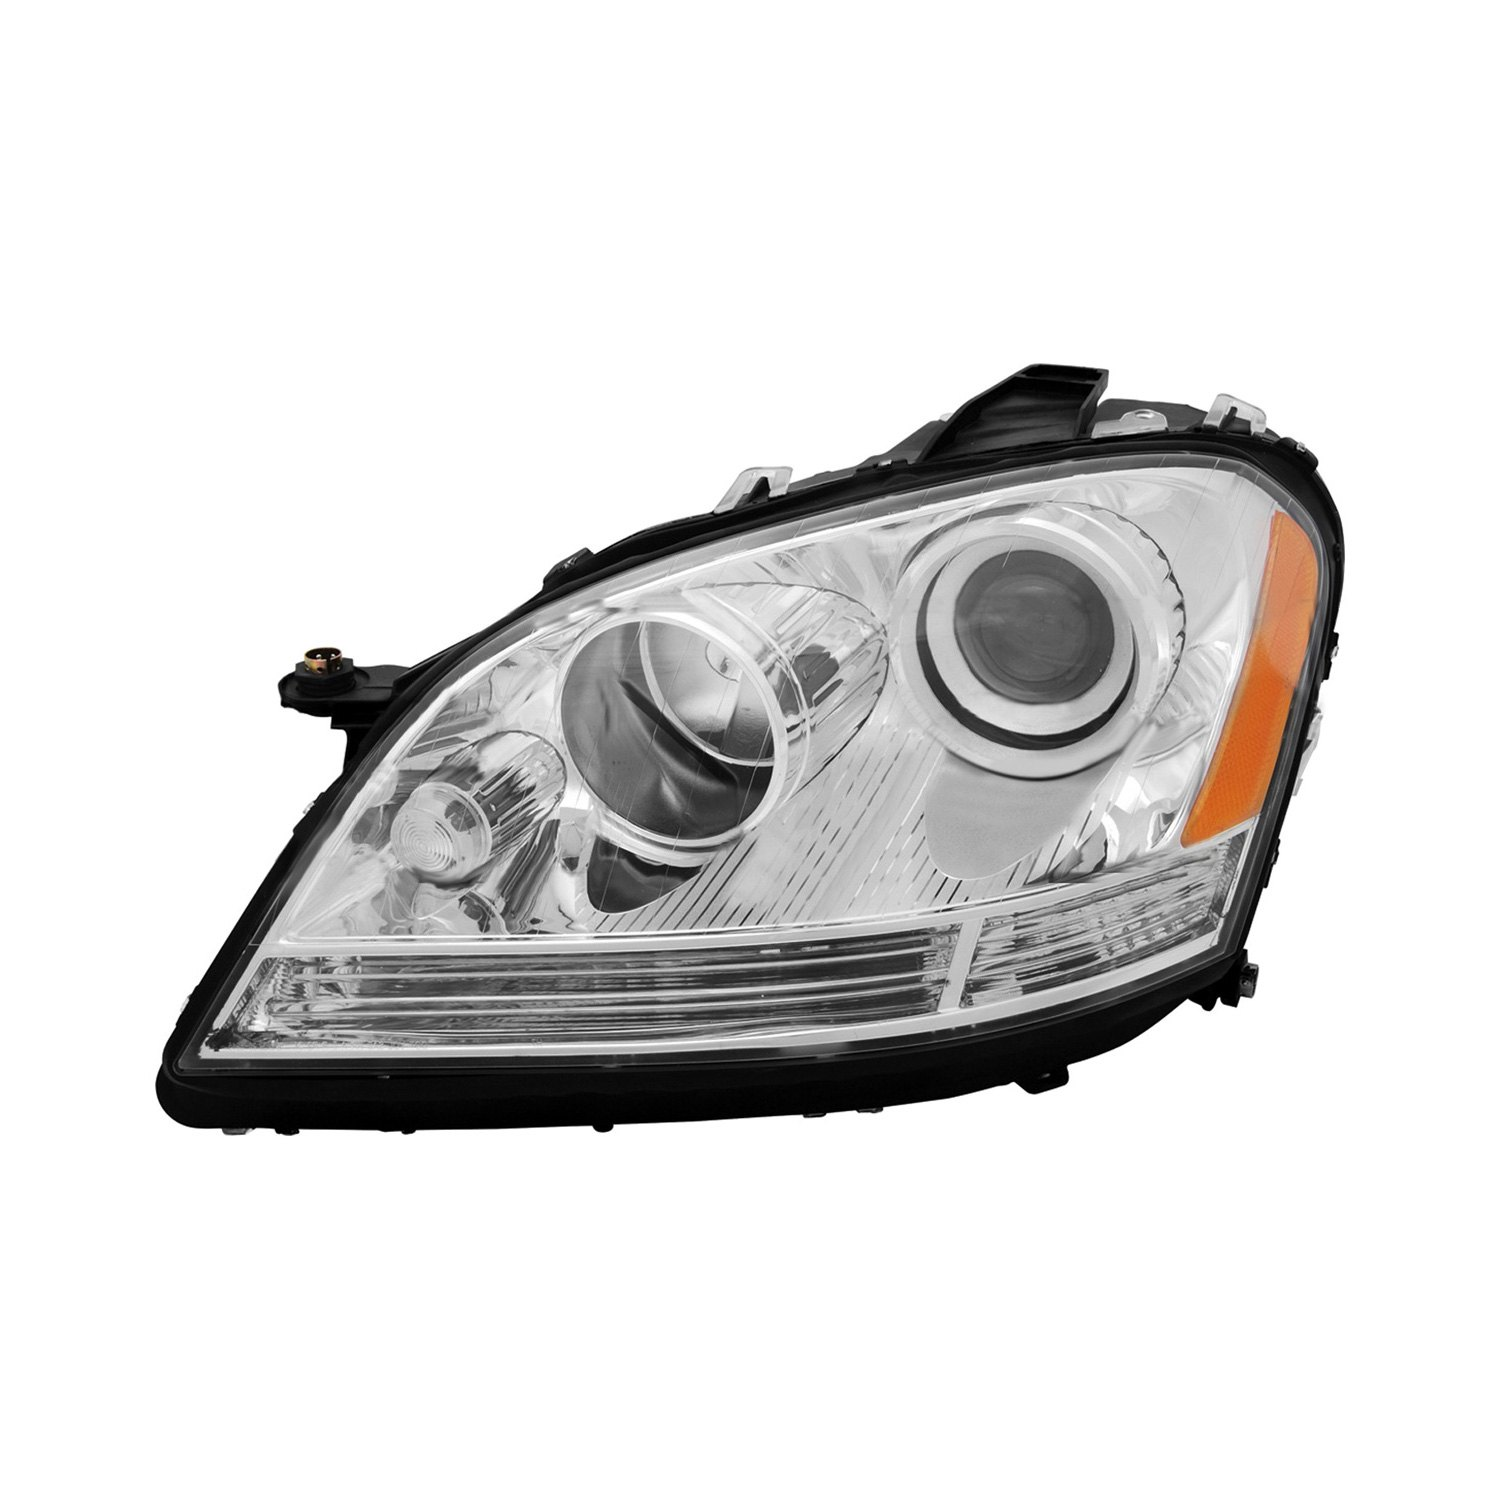 Tyc mercedes ml350 ml500 sport utility with factory for Mercedes benz aftermarket headlights